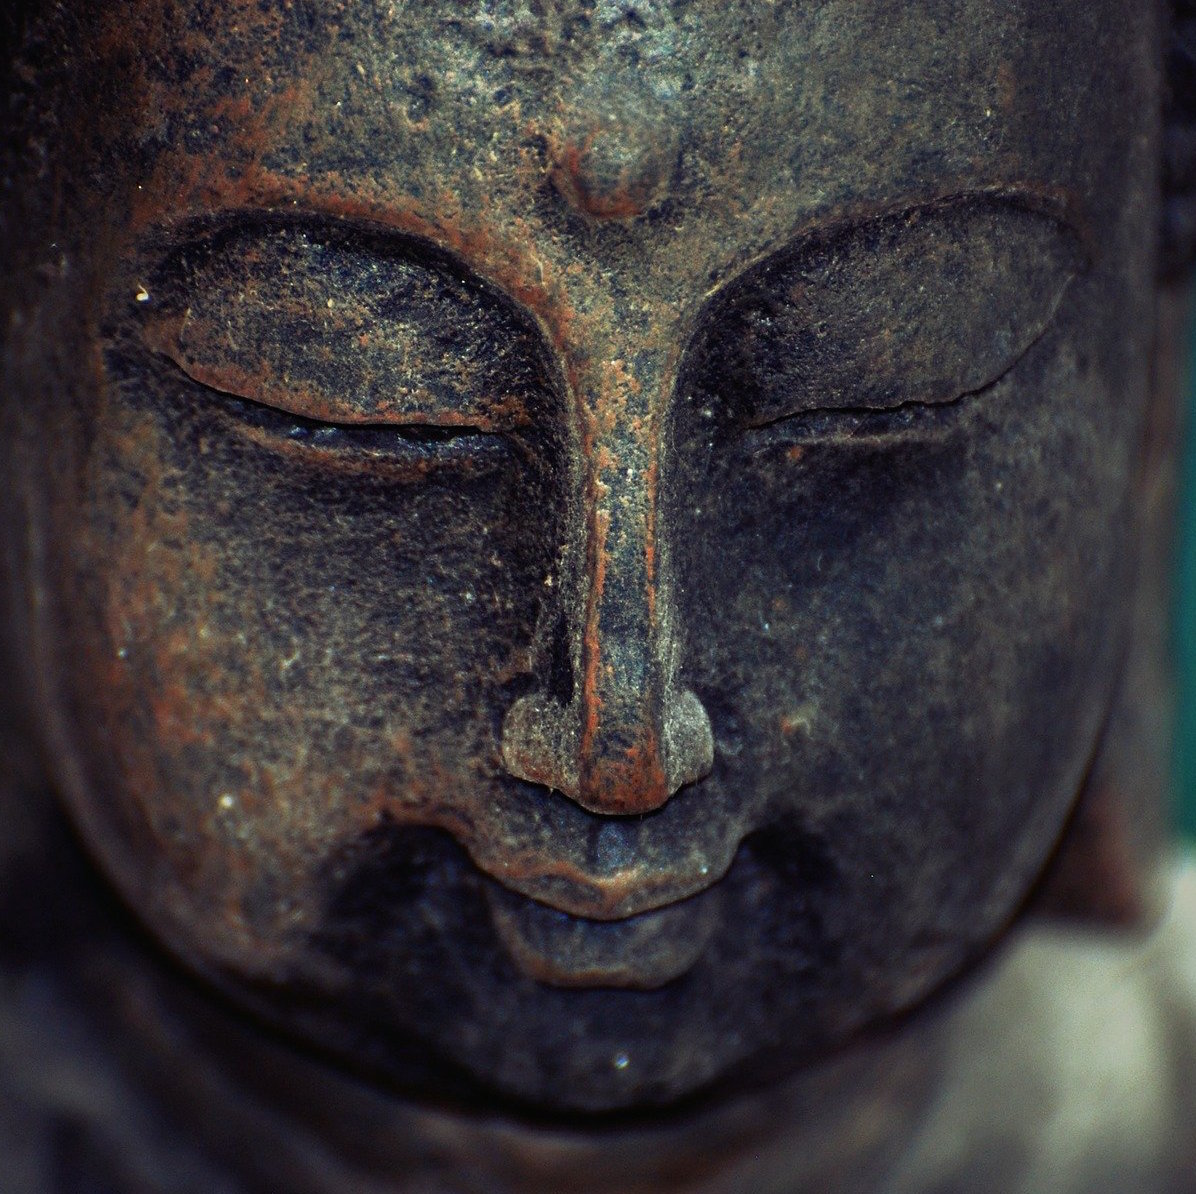 https://pixabay.com/photos/zen-buddha-peace-meditation-statue-509371/